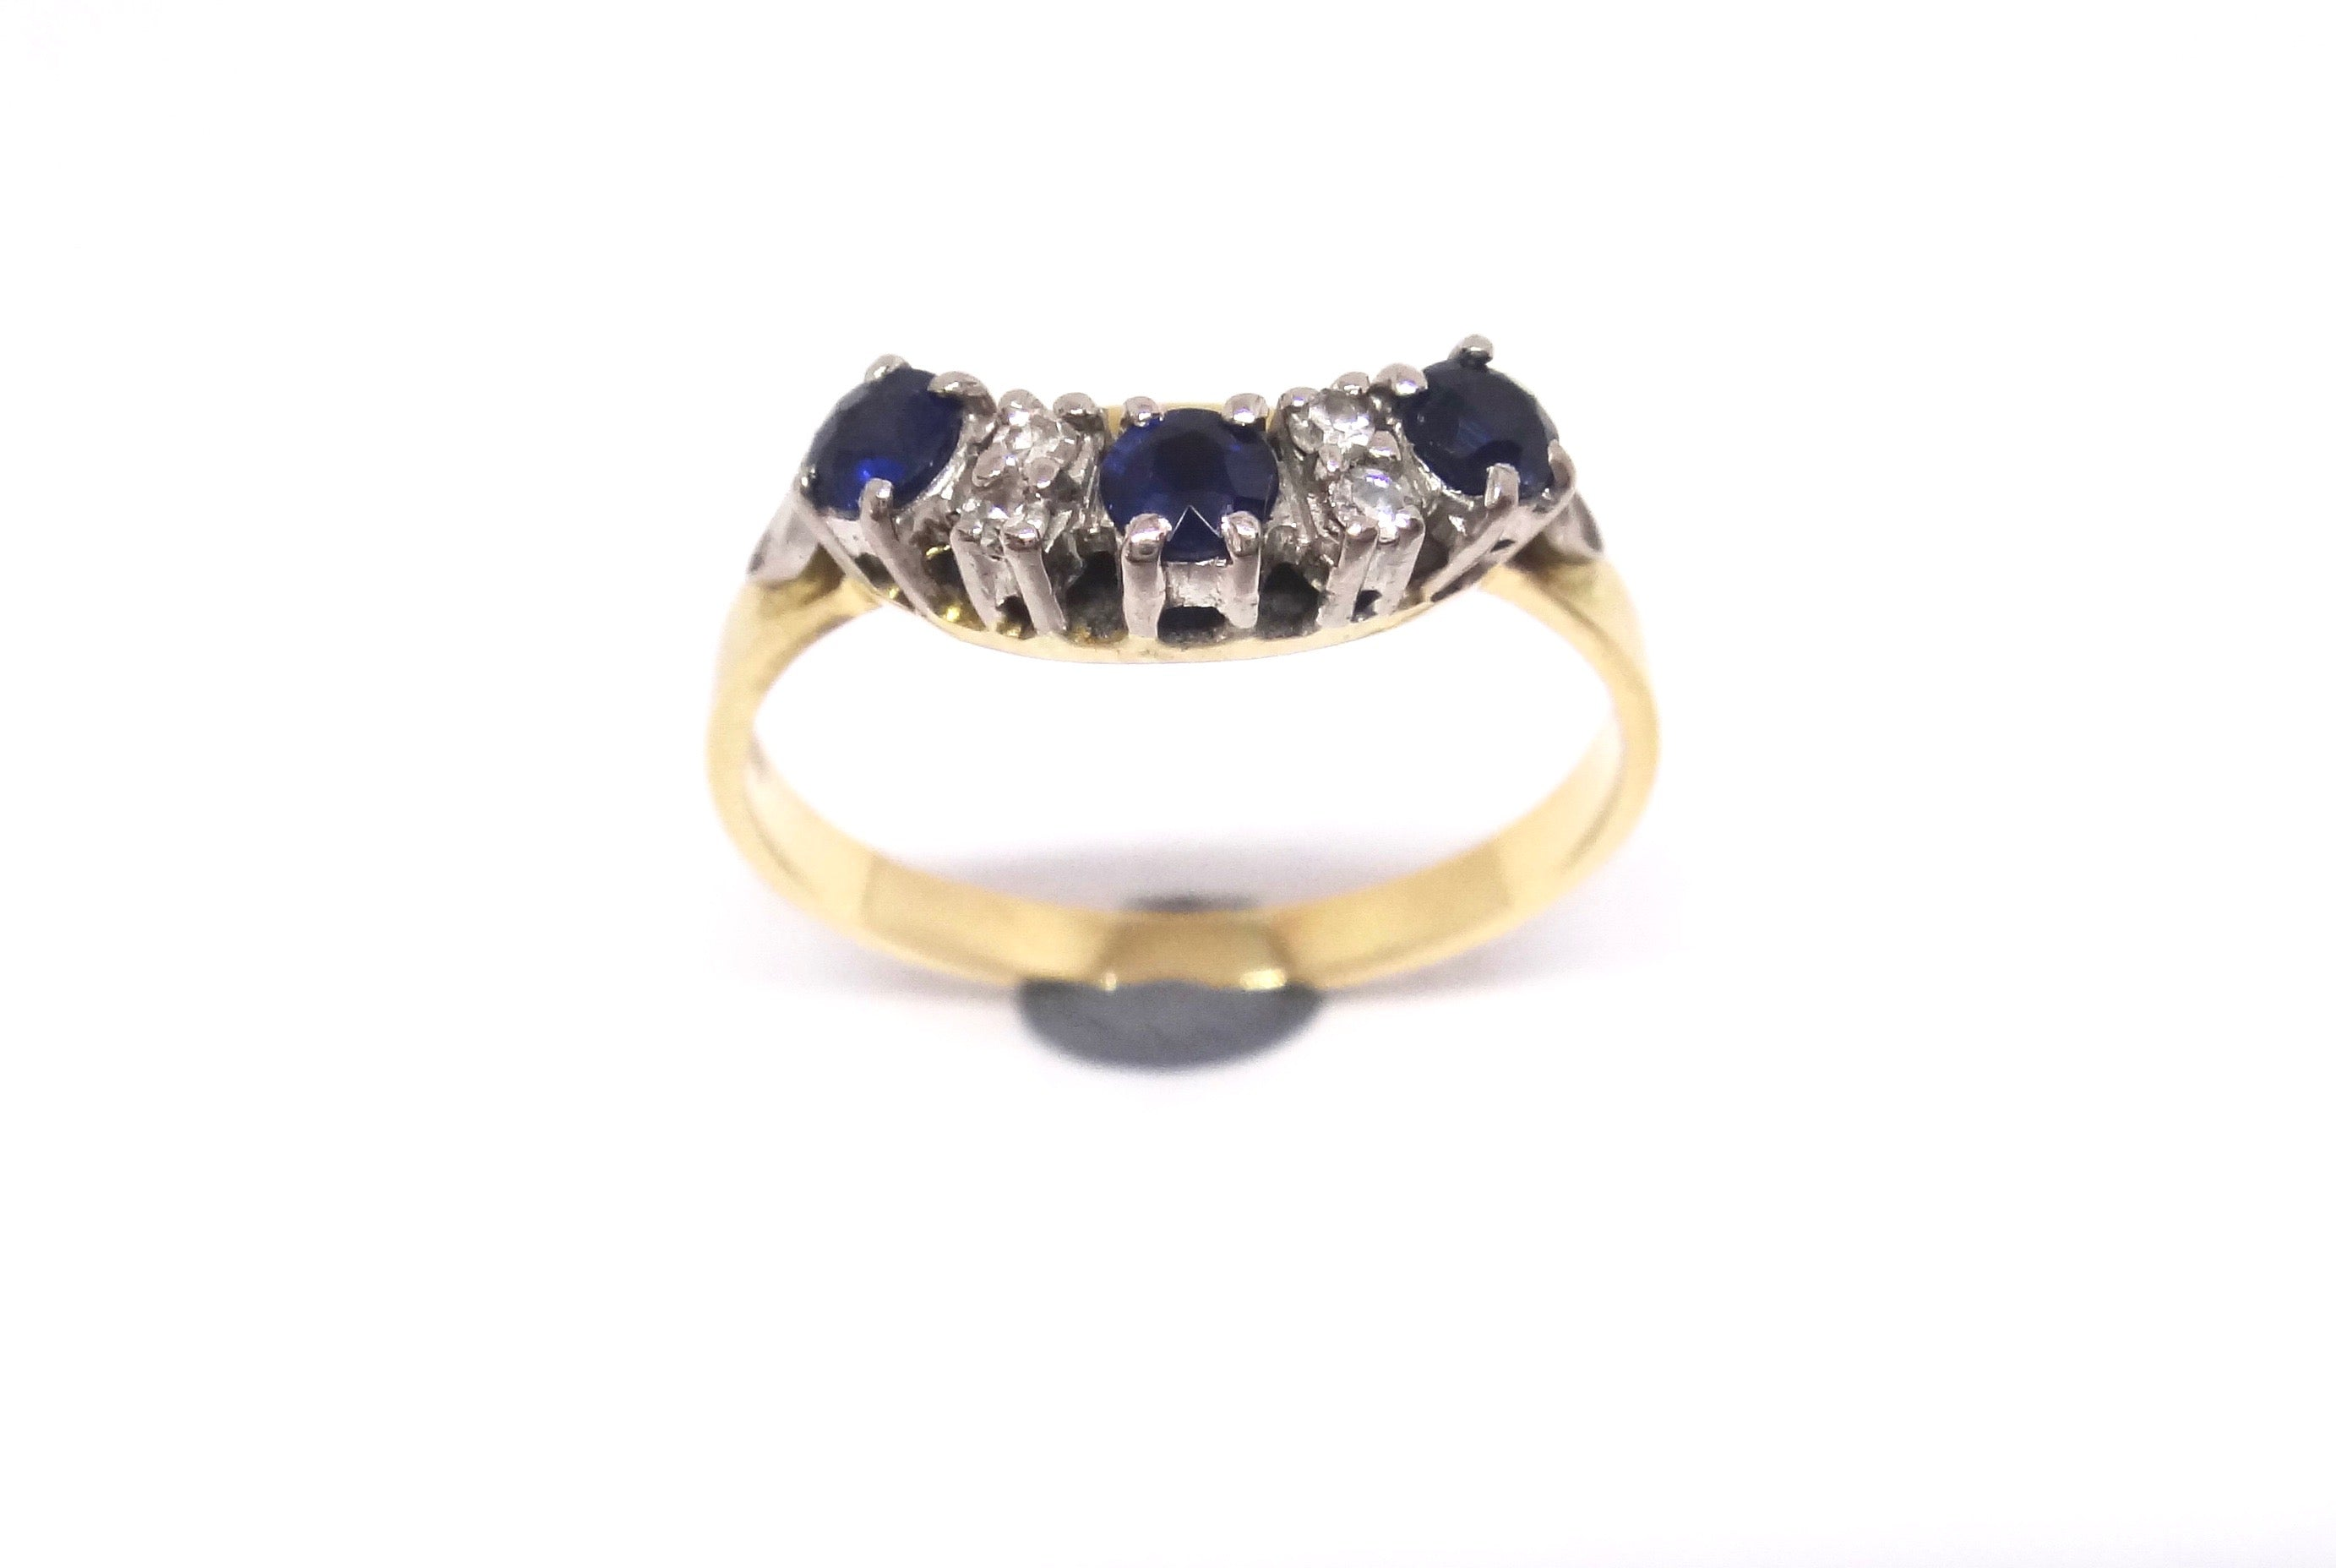 Handmade 18CT Yellow GOLD, Sapphire & Diamond Ring